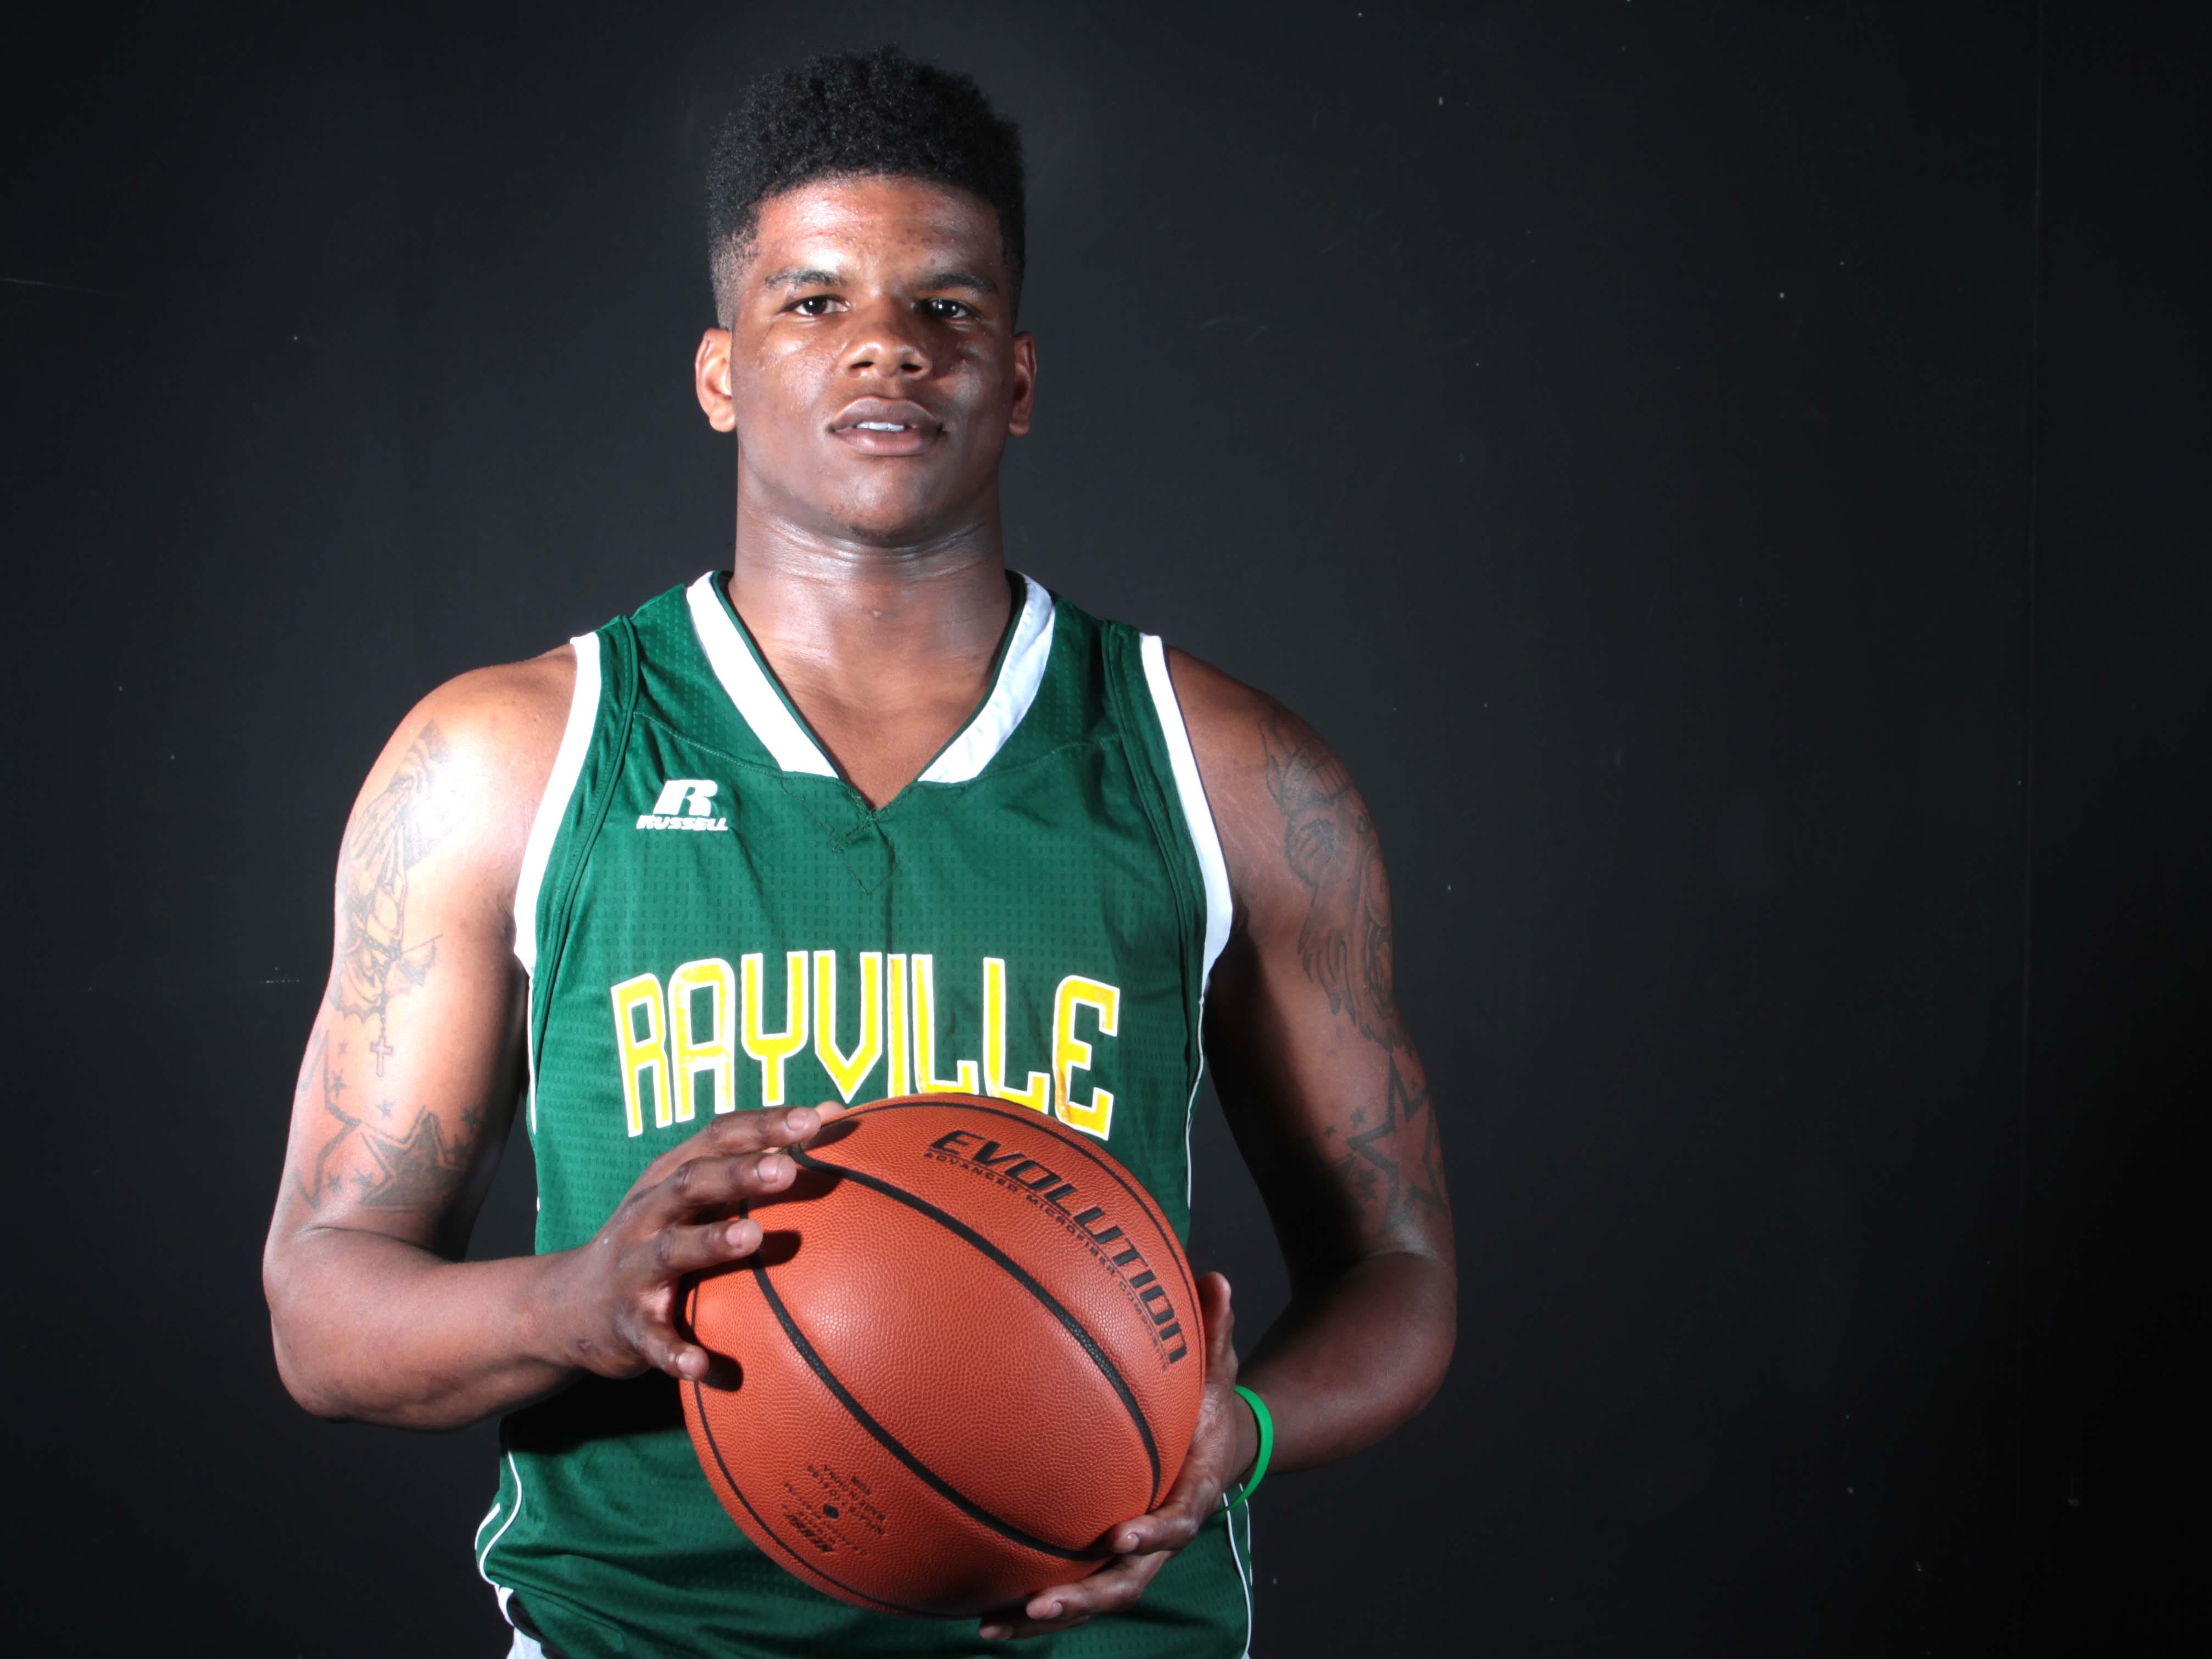 Rayville senior Jamarion Johnson is the All-NELA Big School Player of the Year